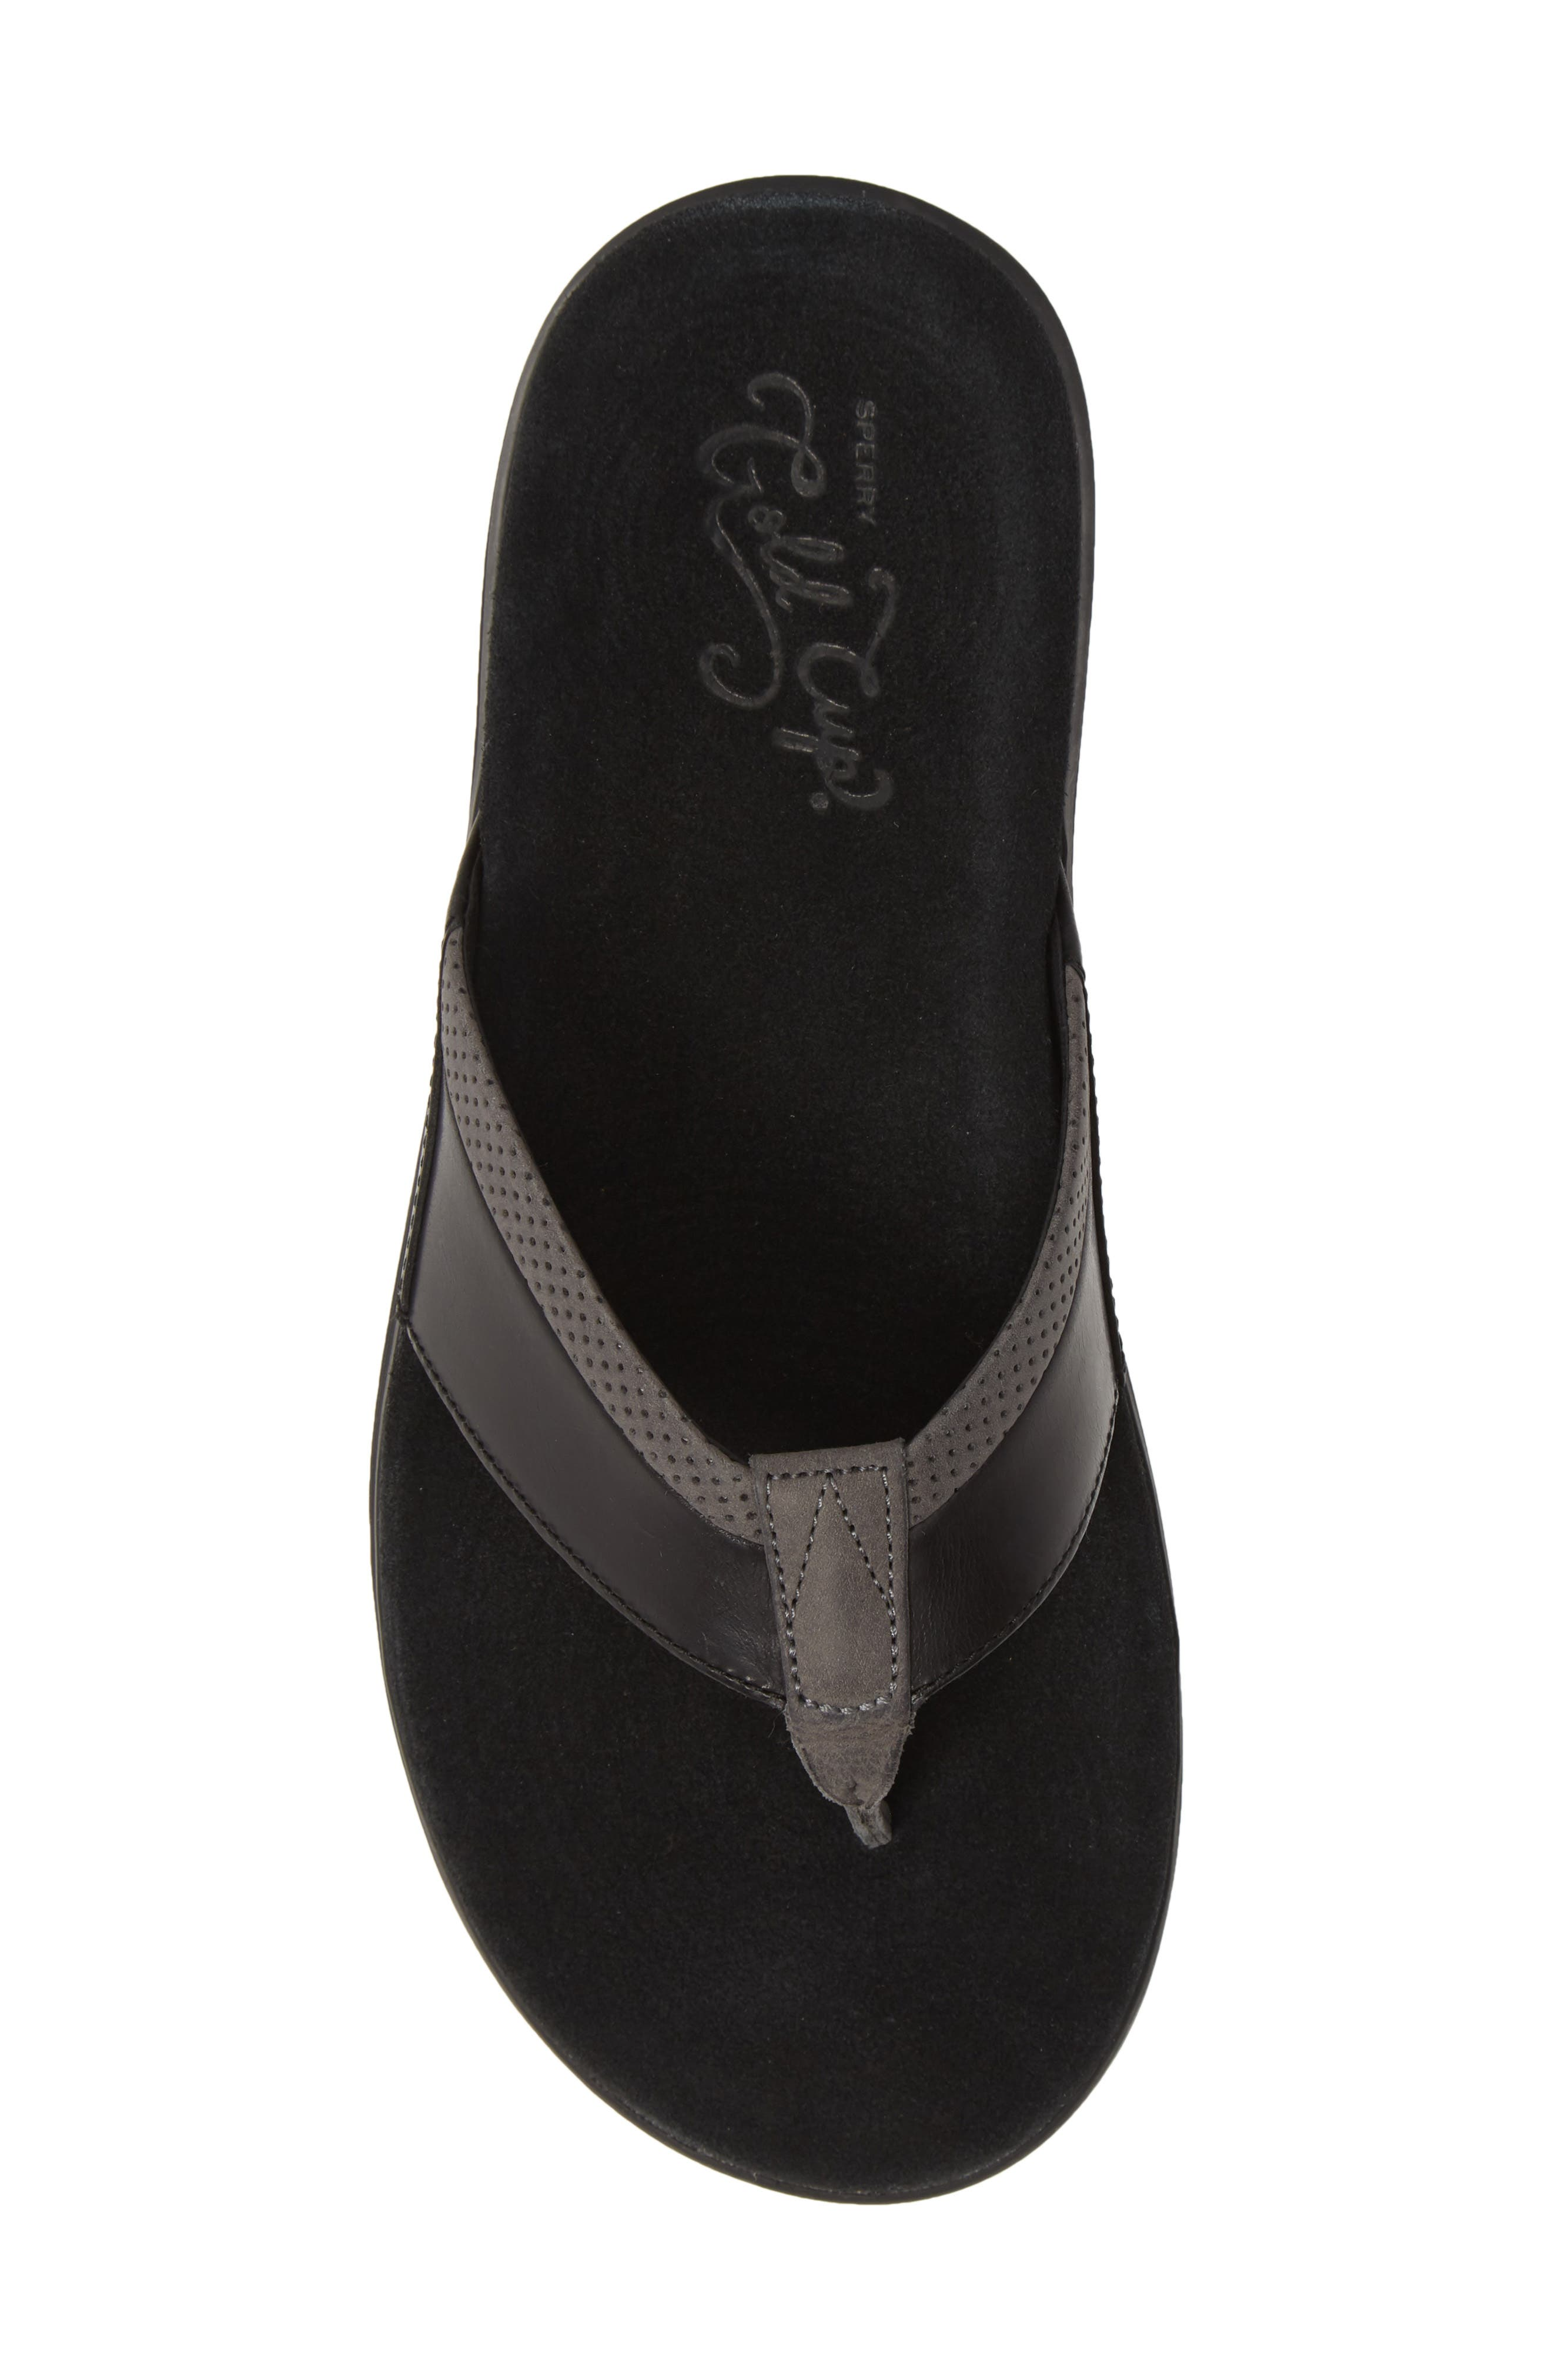 SPERRY, Gold Cup Amalfi Flip Flop, Alternate thumbnail 5, color, BLACK/ GREY LEATHER